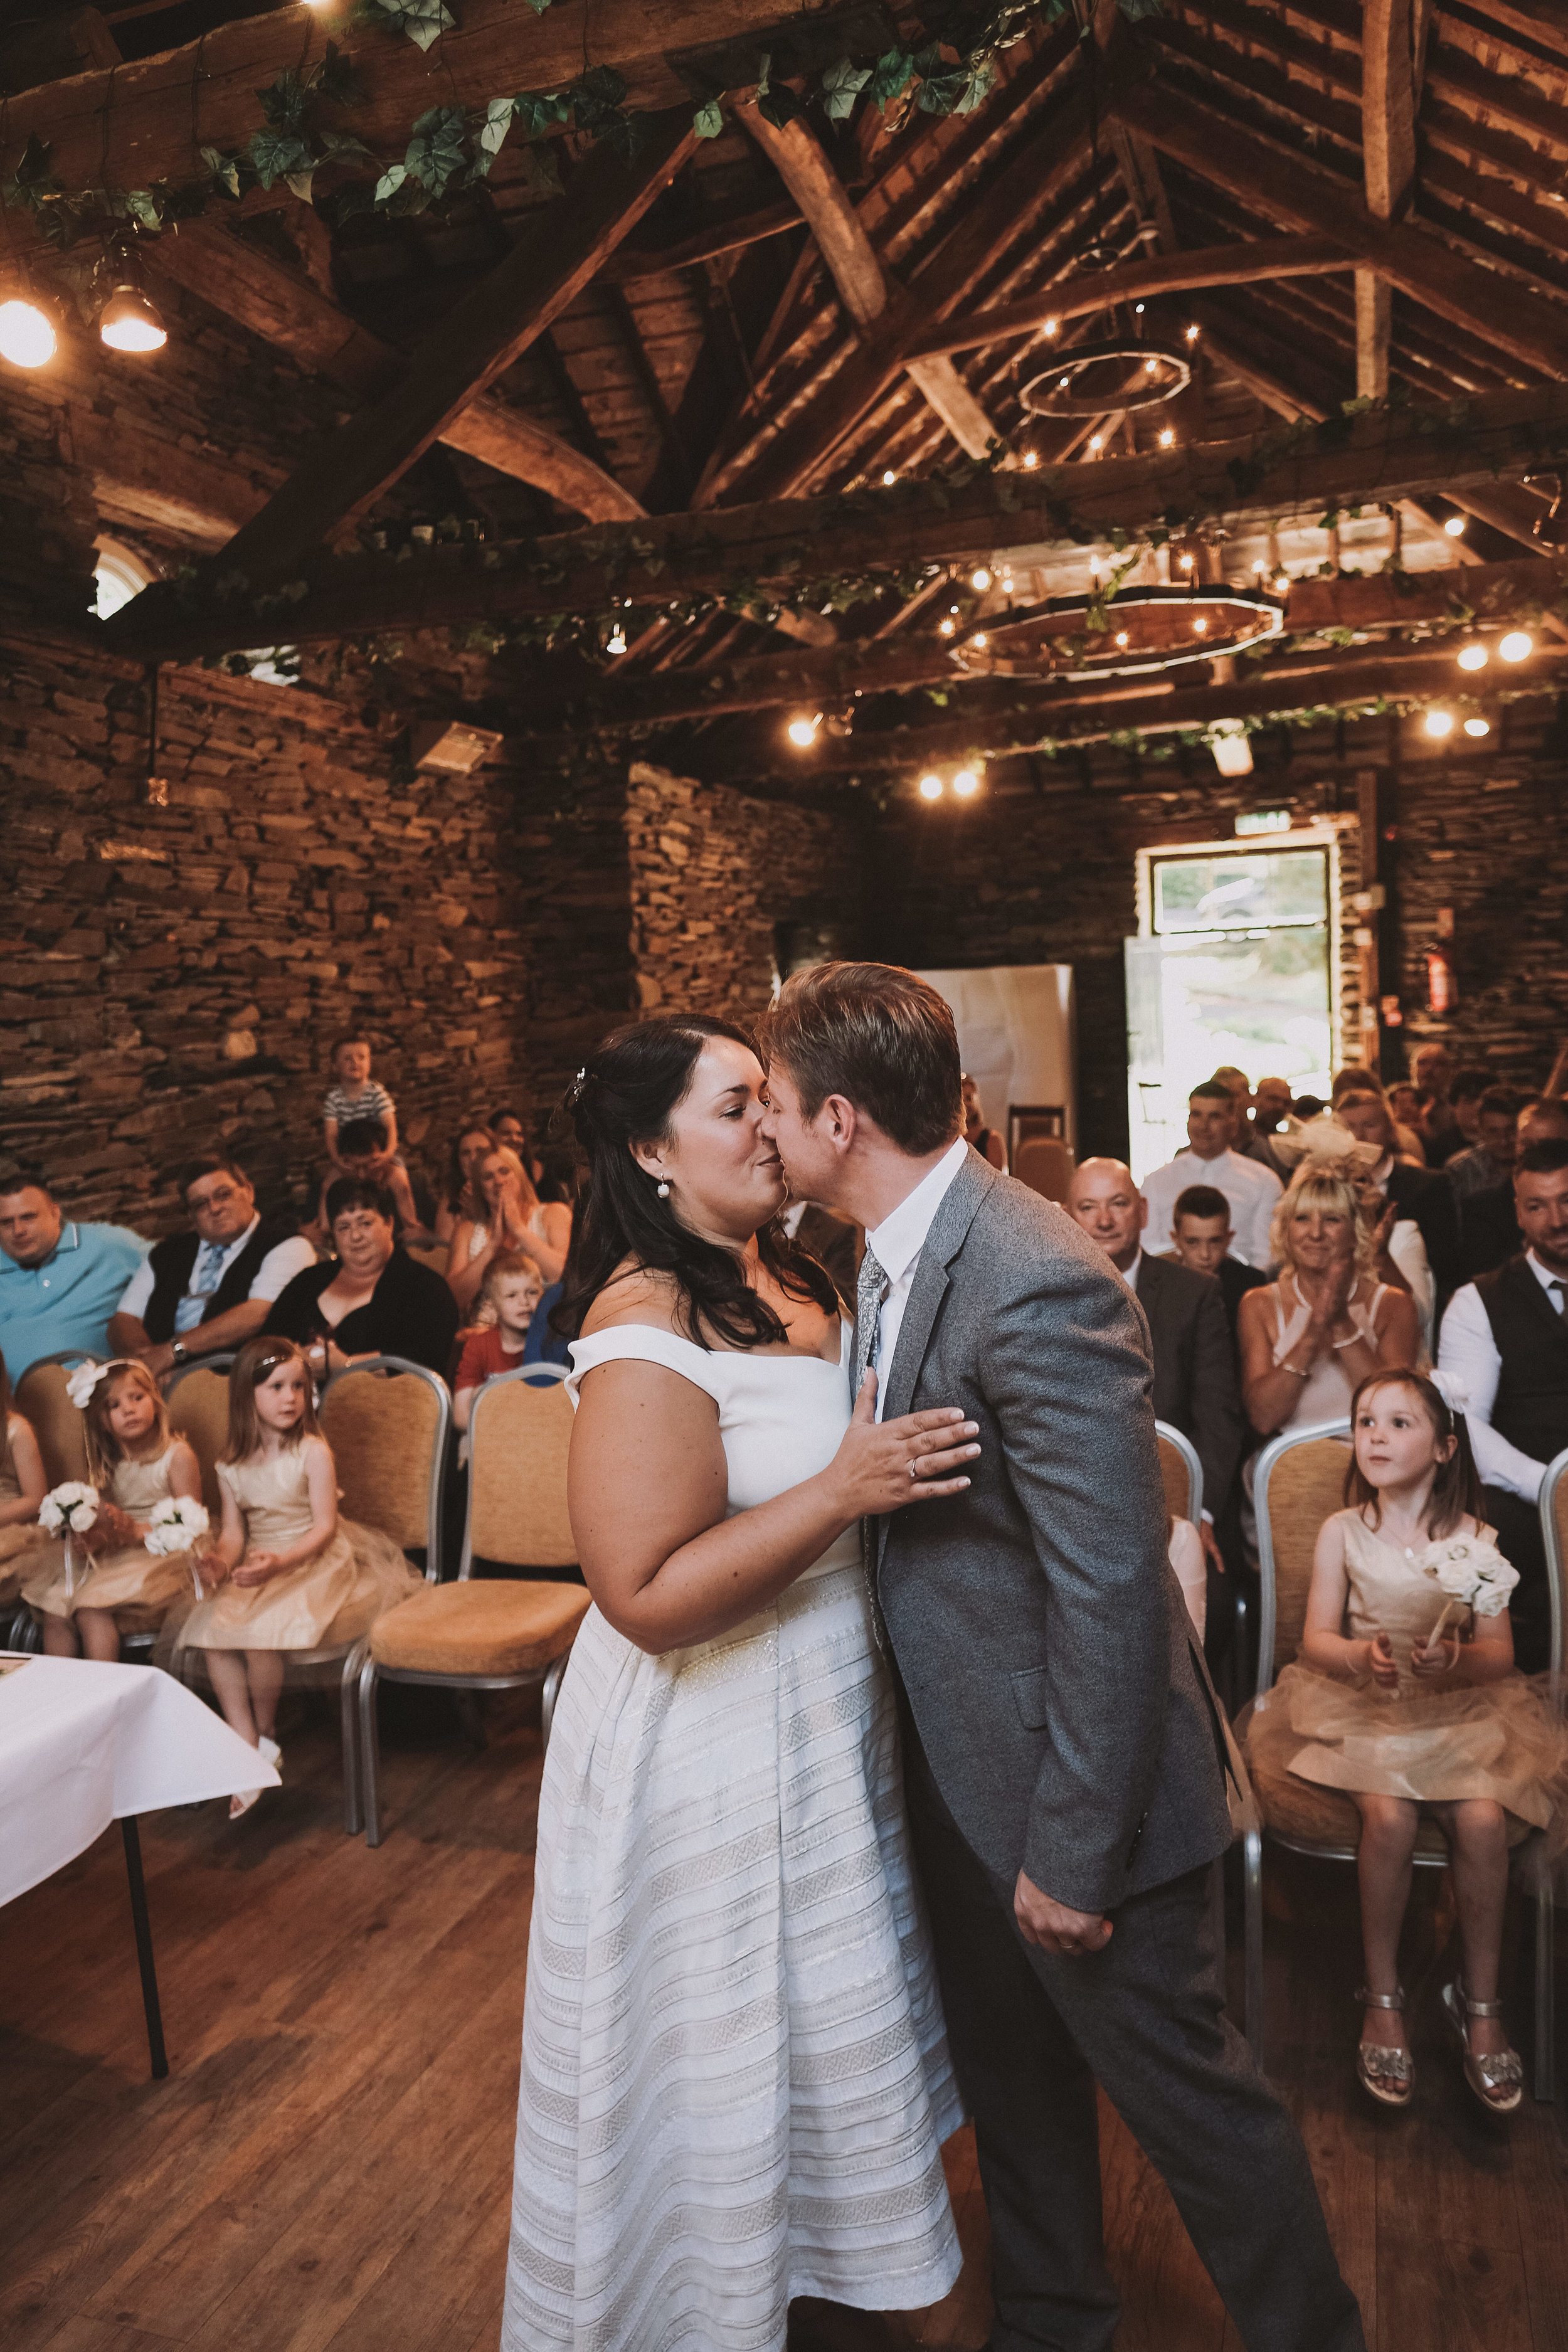 The bride and groom kiss during the ceremony at Julia and Darren's Lake District wedding by Barry Forshaw